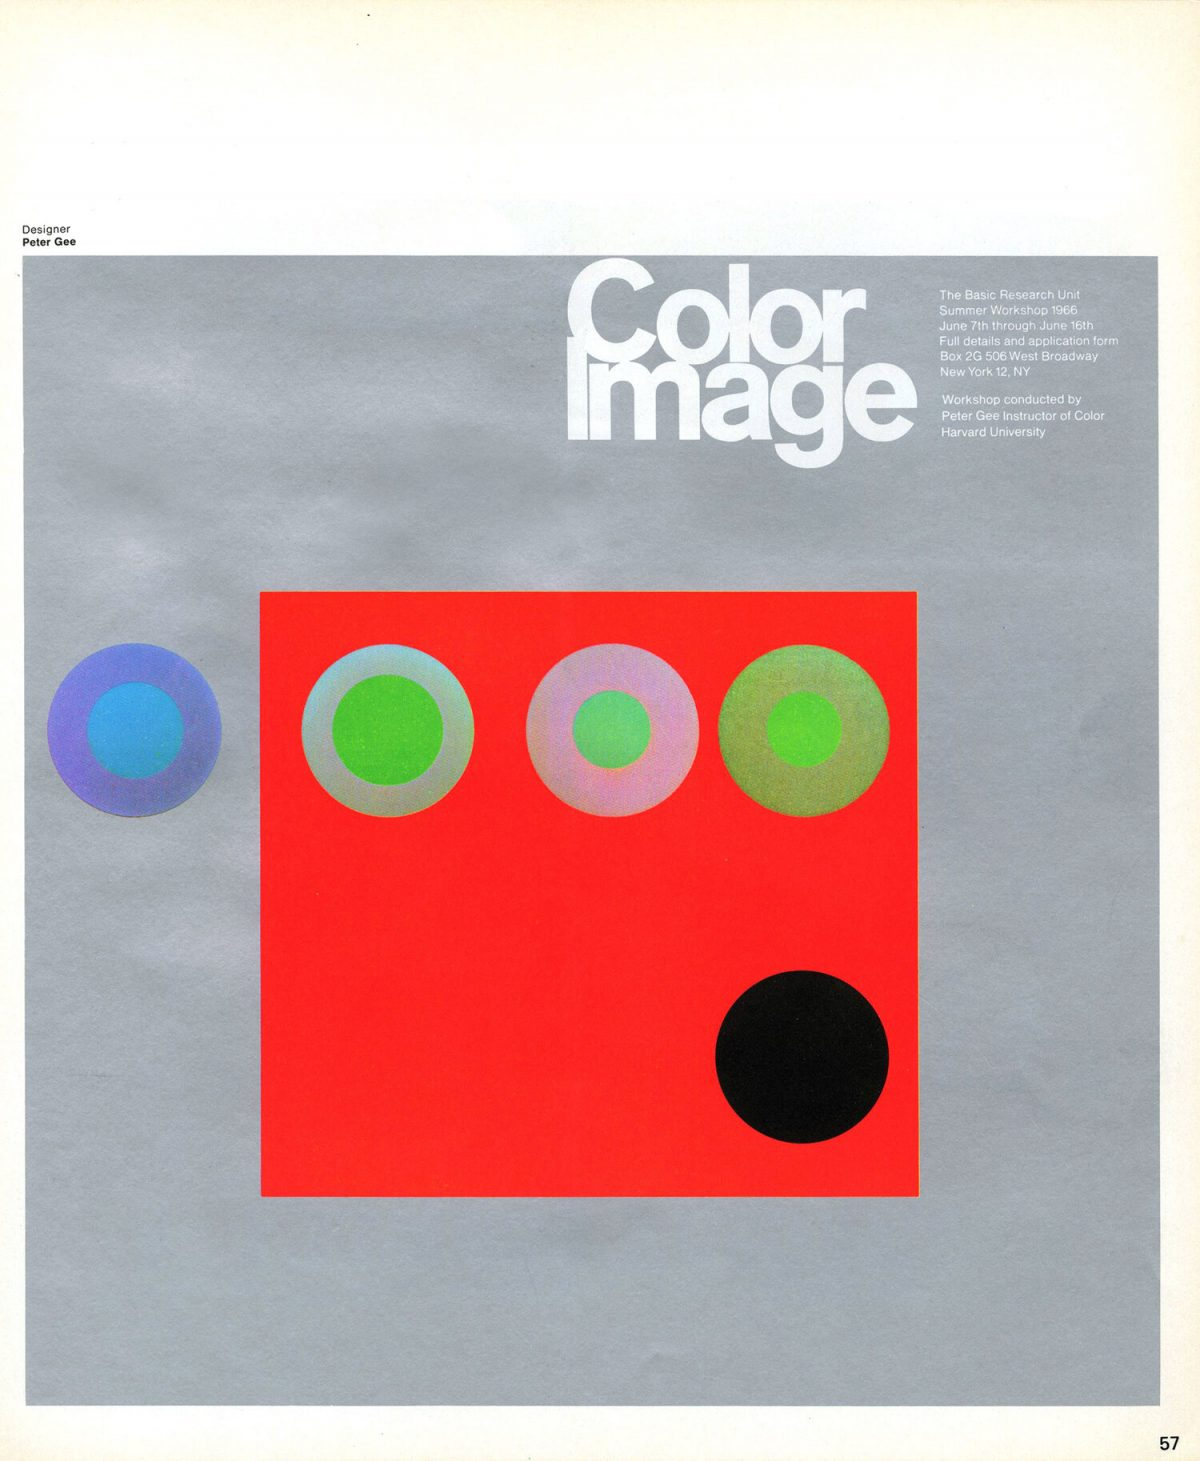 THE DAY-GLO DESIGNERS GUIDE 1960s